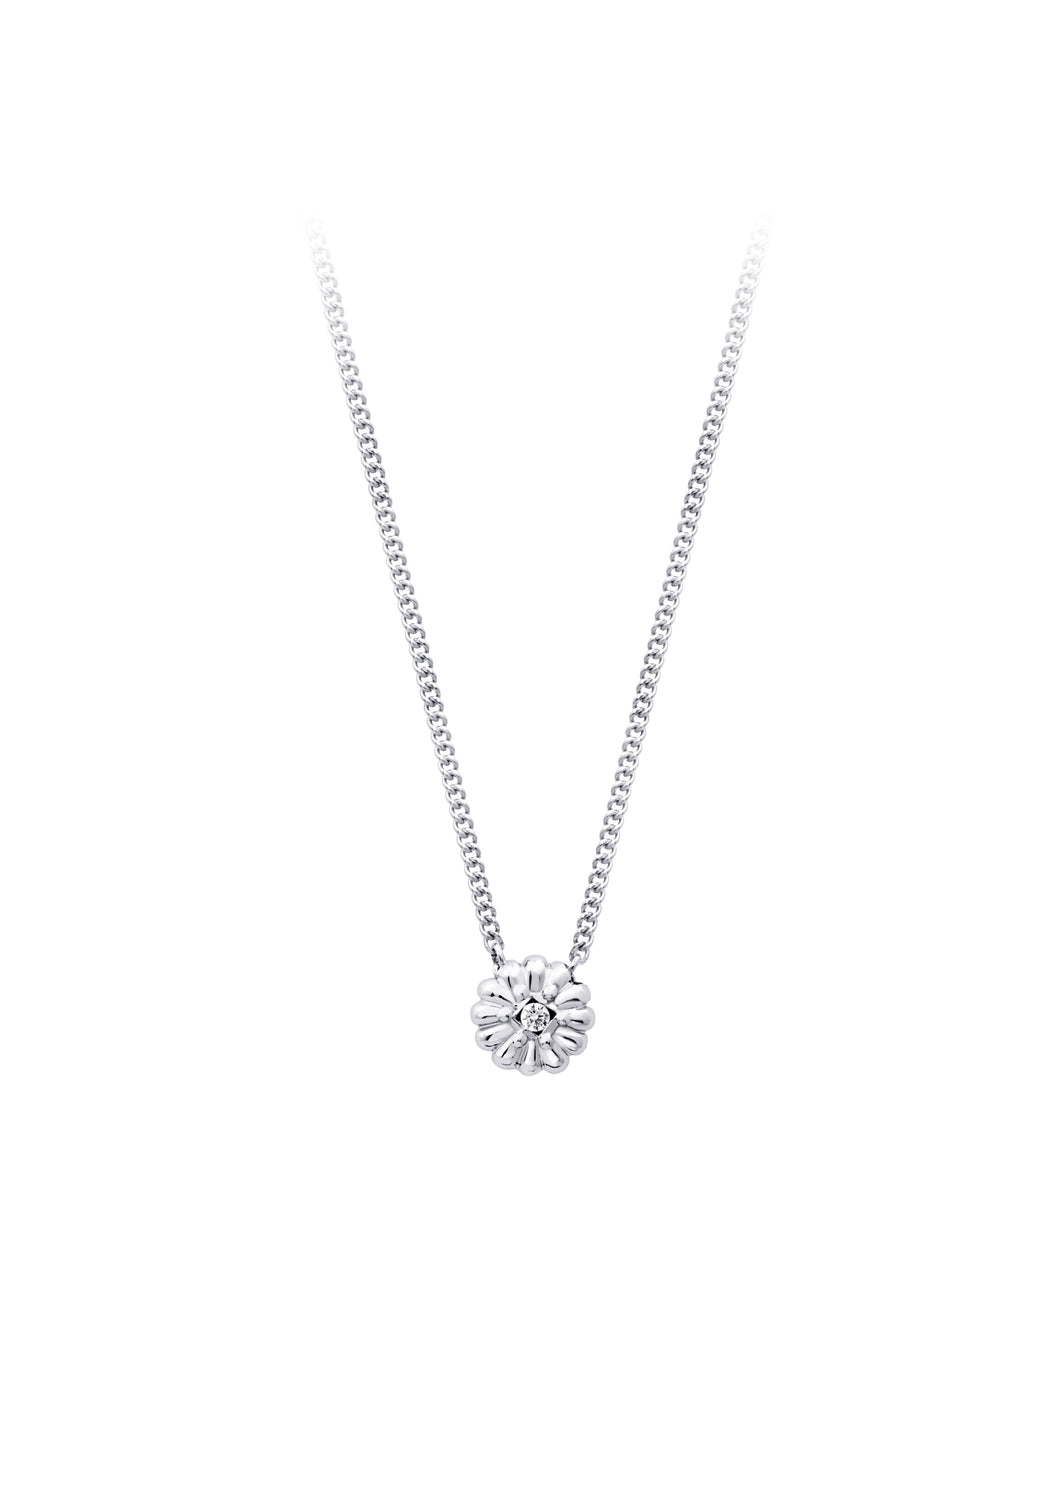 Diamond Flower Pendant  0.0085ct  10k White Gold  Comes with 10k Gold 18in Chain